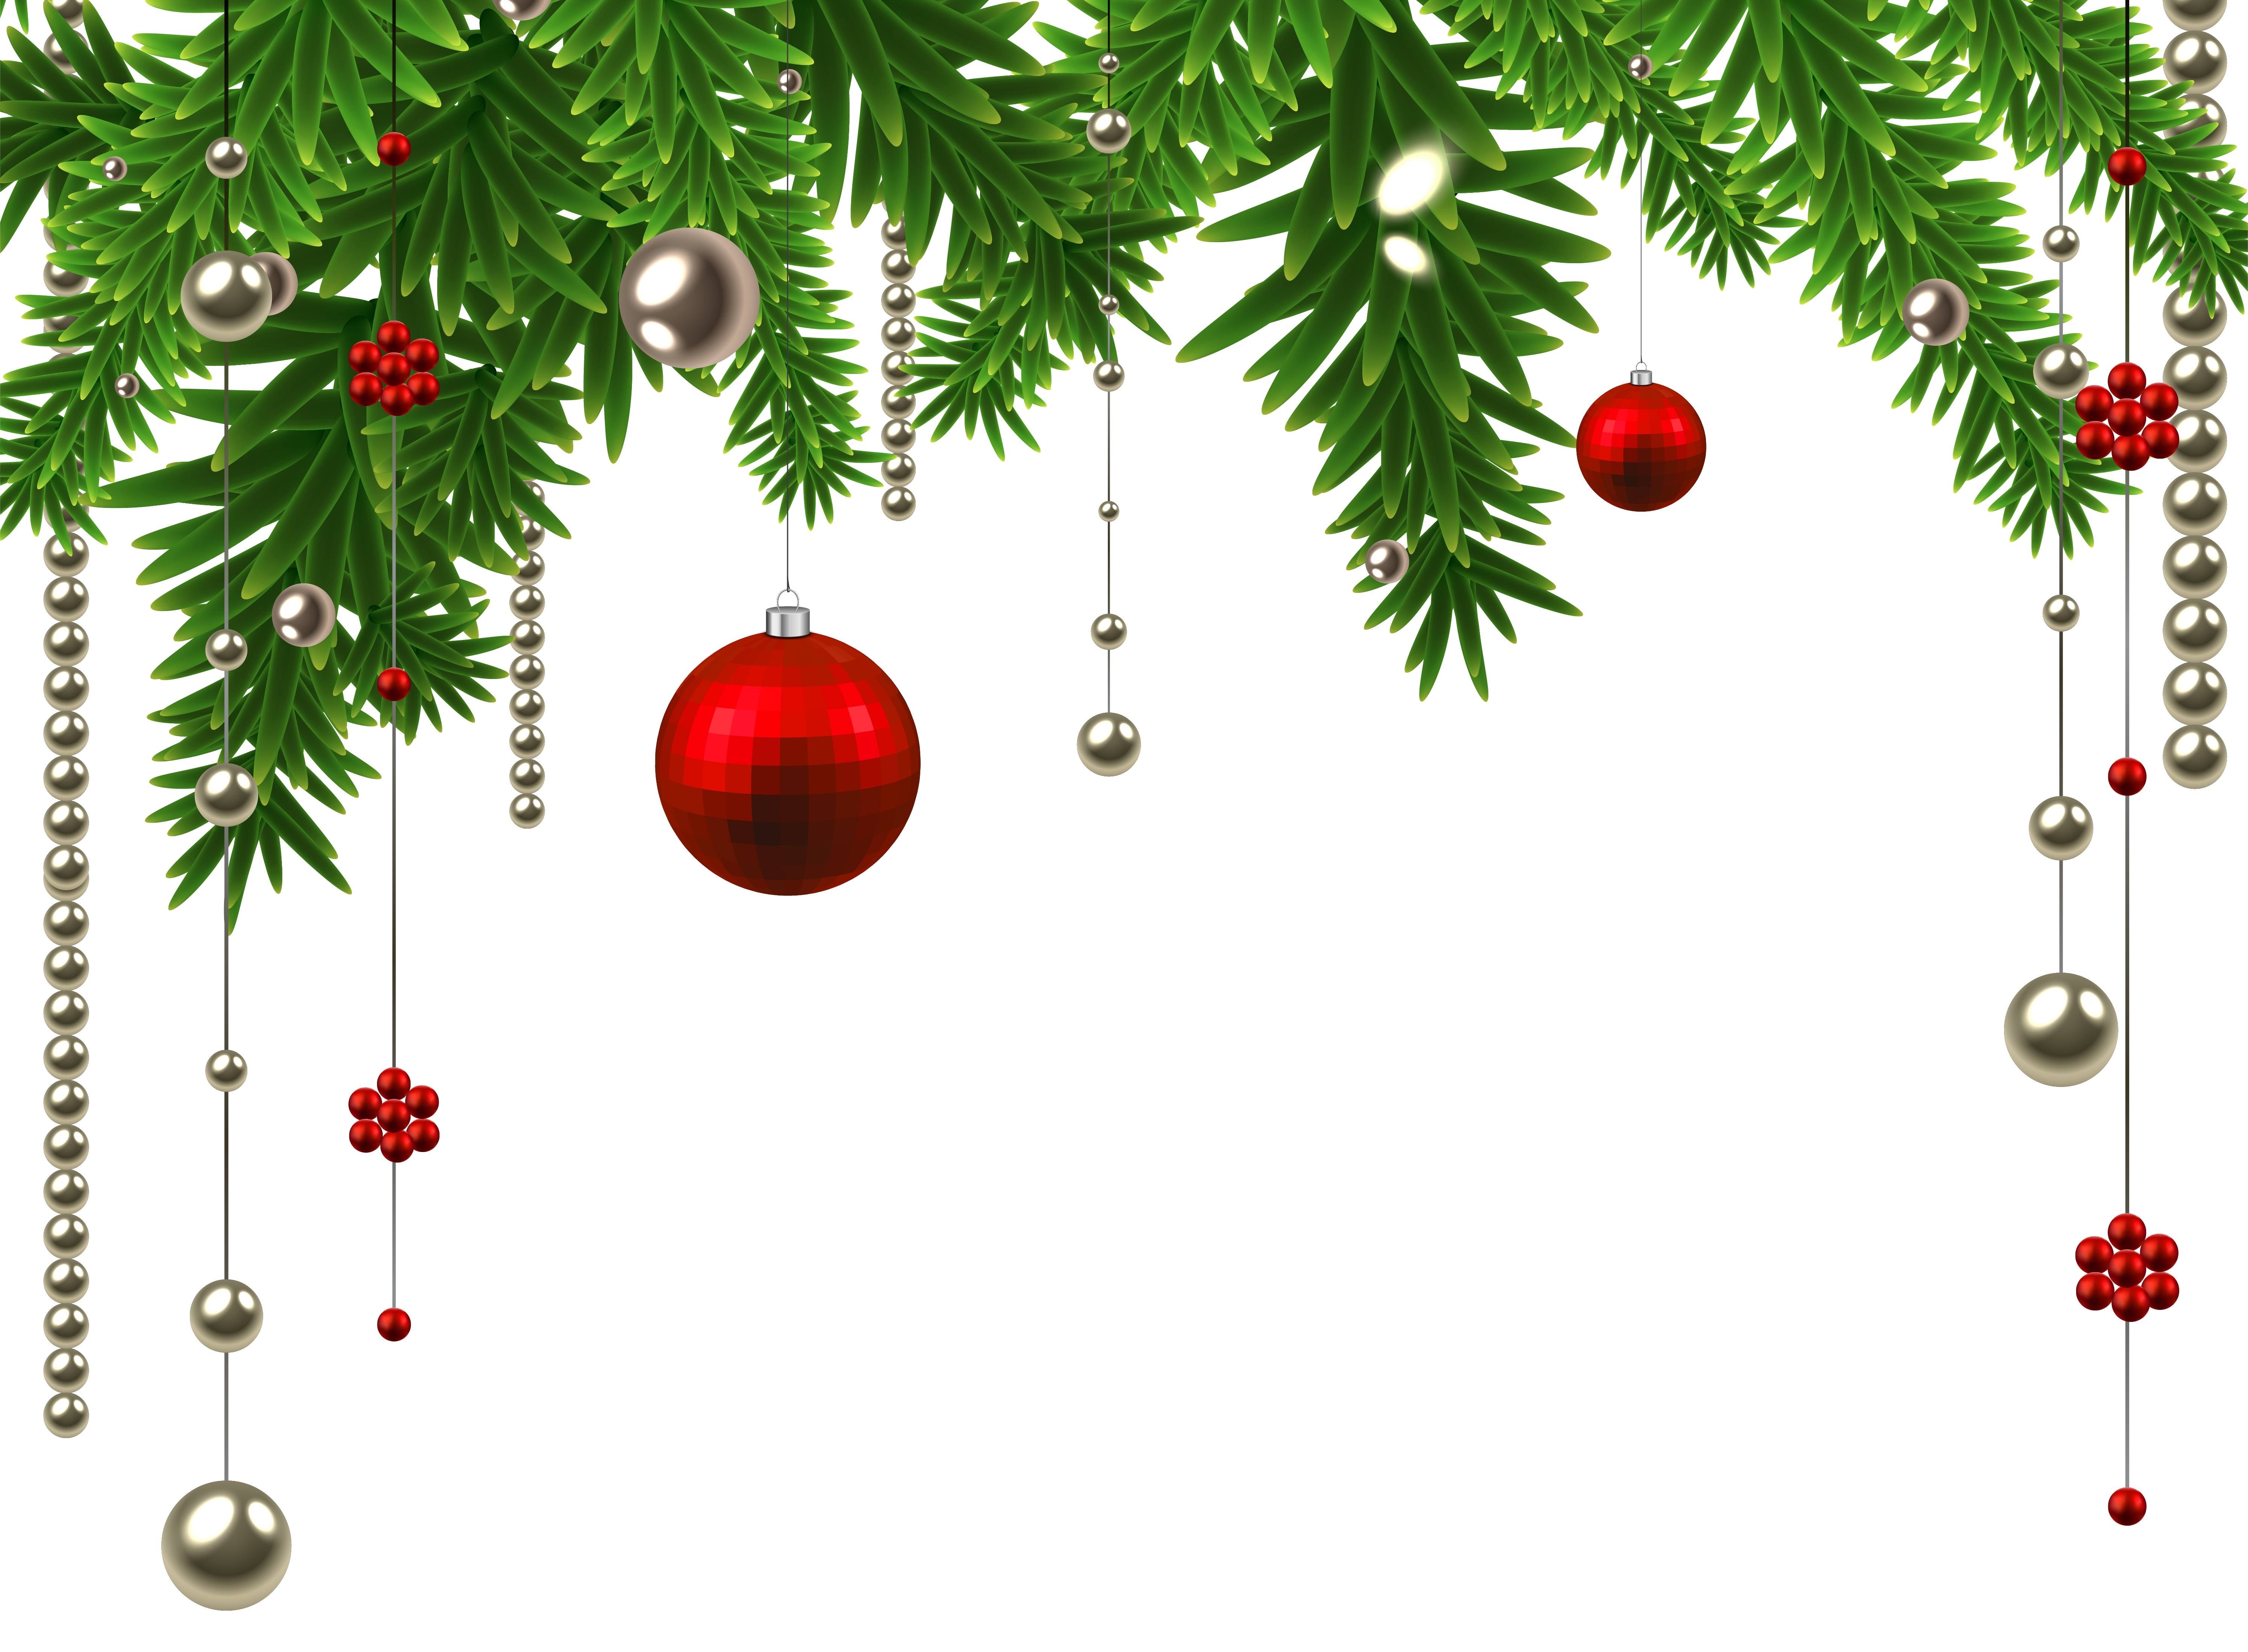 Chritmas decorations clipart image download Christmas Hanging Ball Decoration PNG Clipart Image | Gallery ... image download